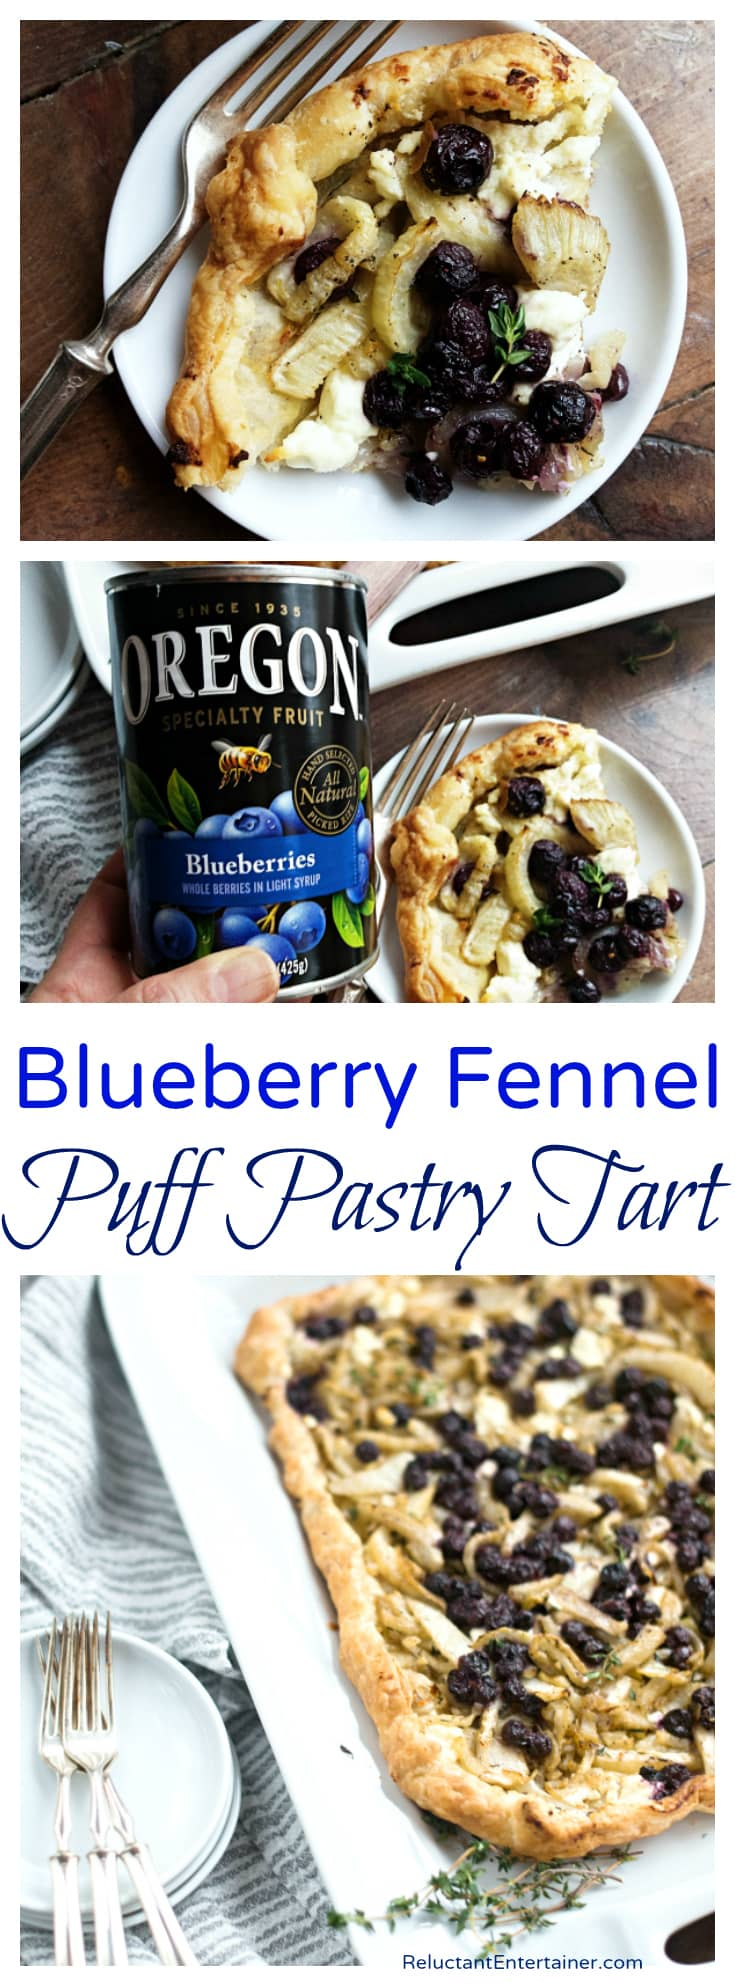 Blueberry Fennel Puff Pastry Tart Recipe